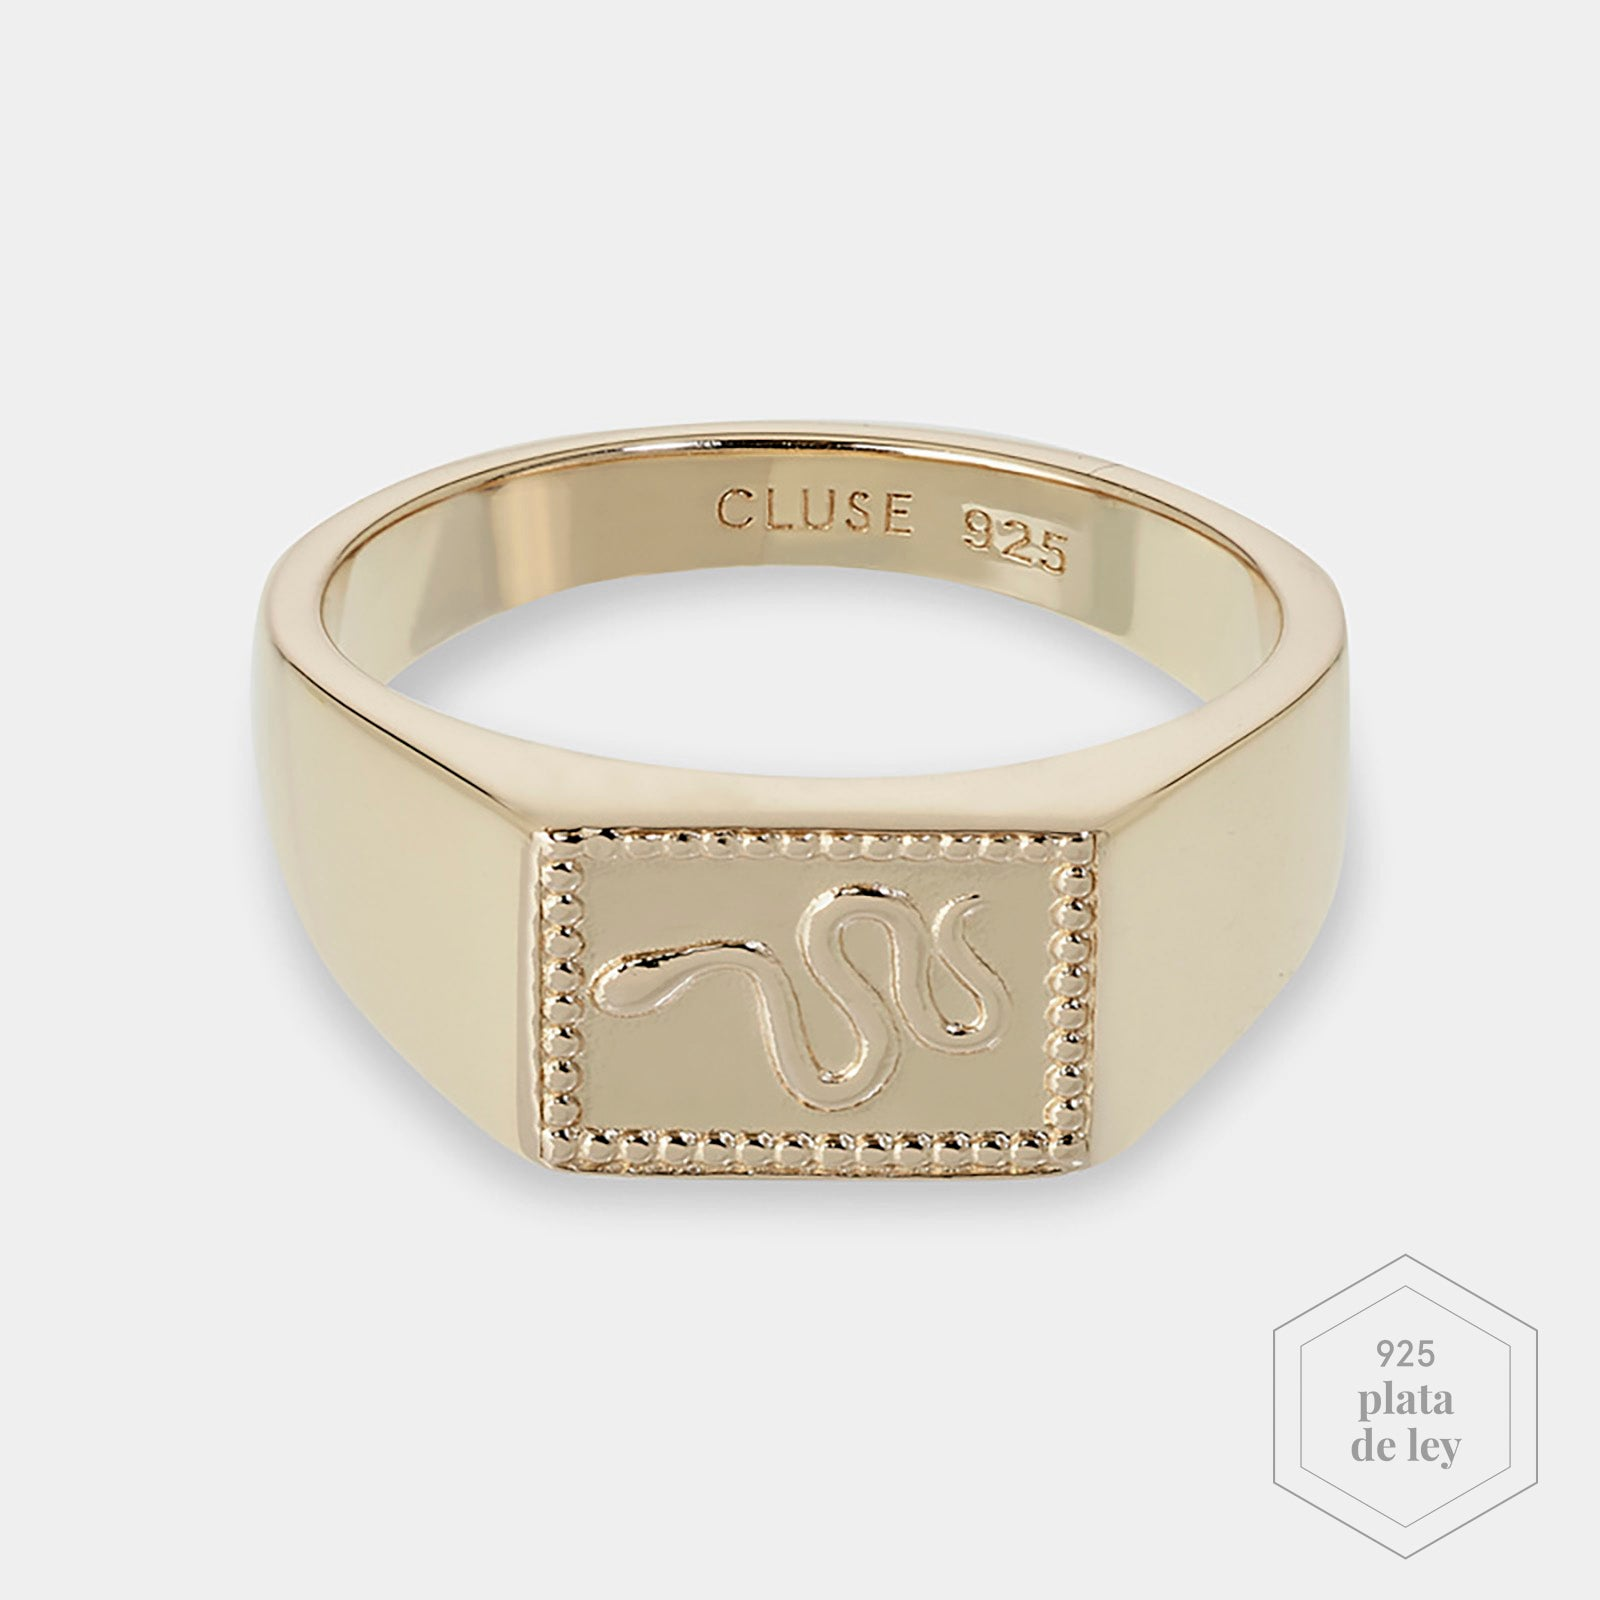 CLUSE Force Tropicale Gold Signet Rectangular Ring 54 CLJ41012-54 - Anillo talla 54